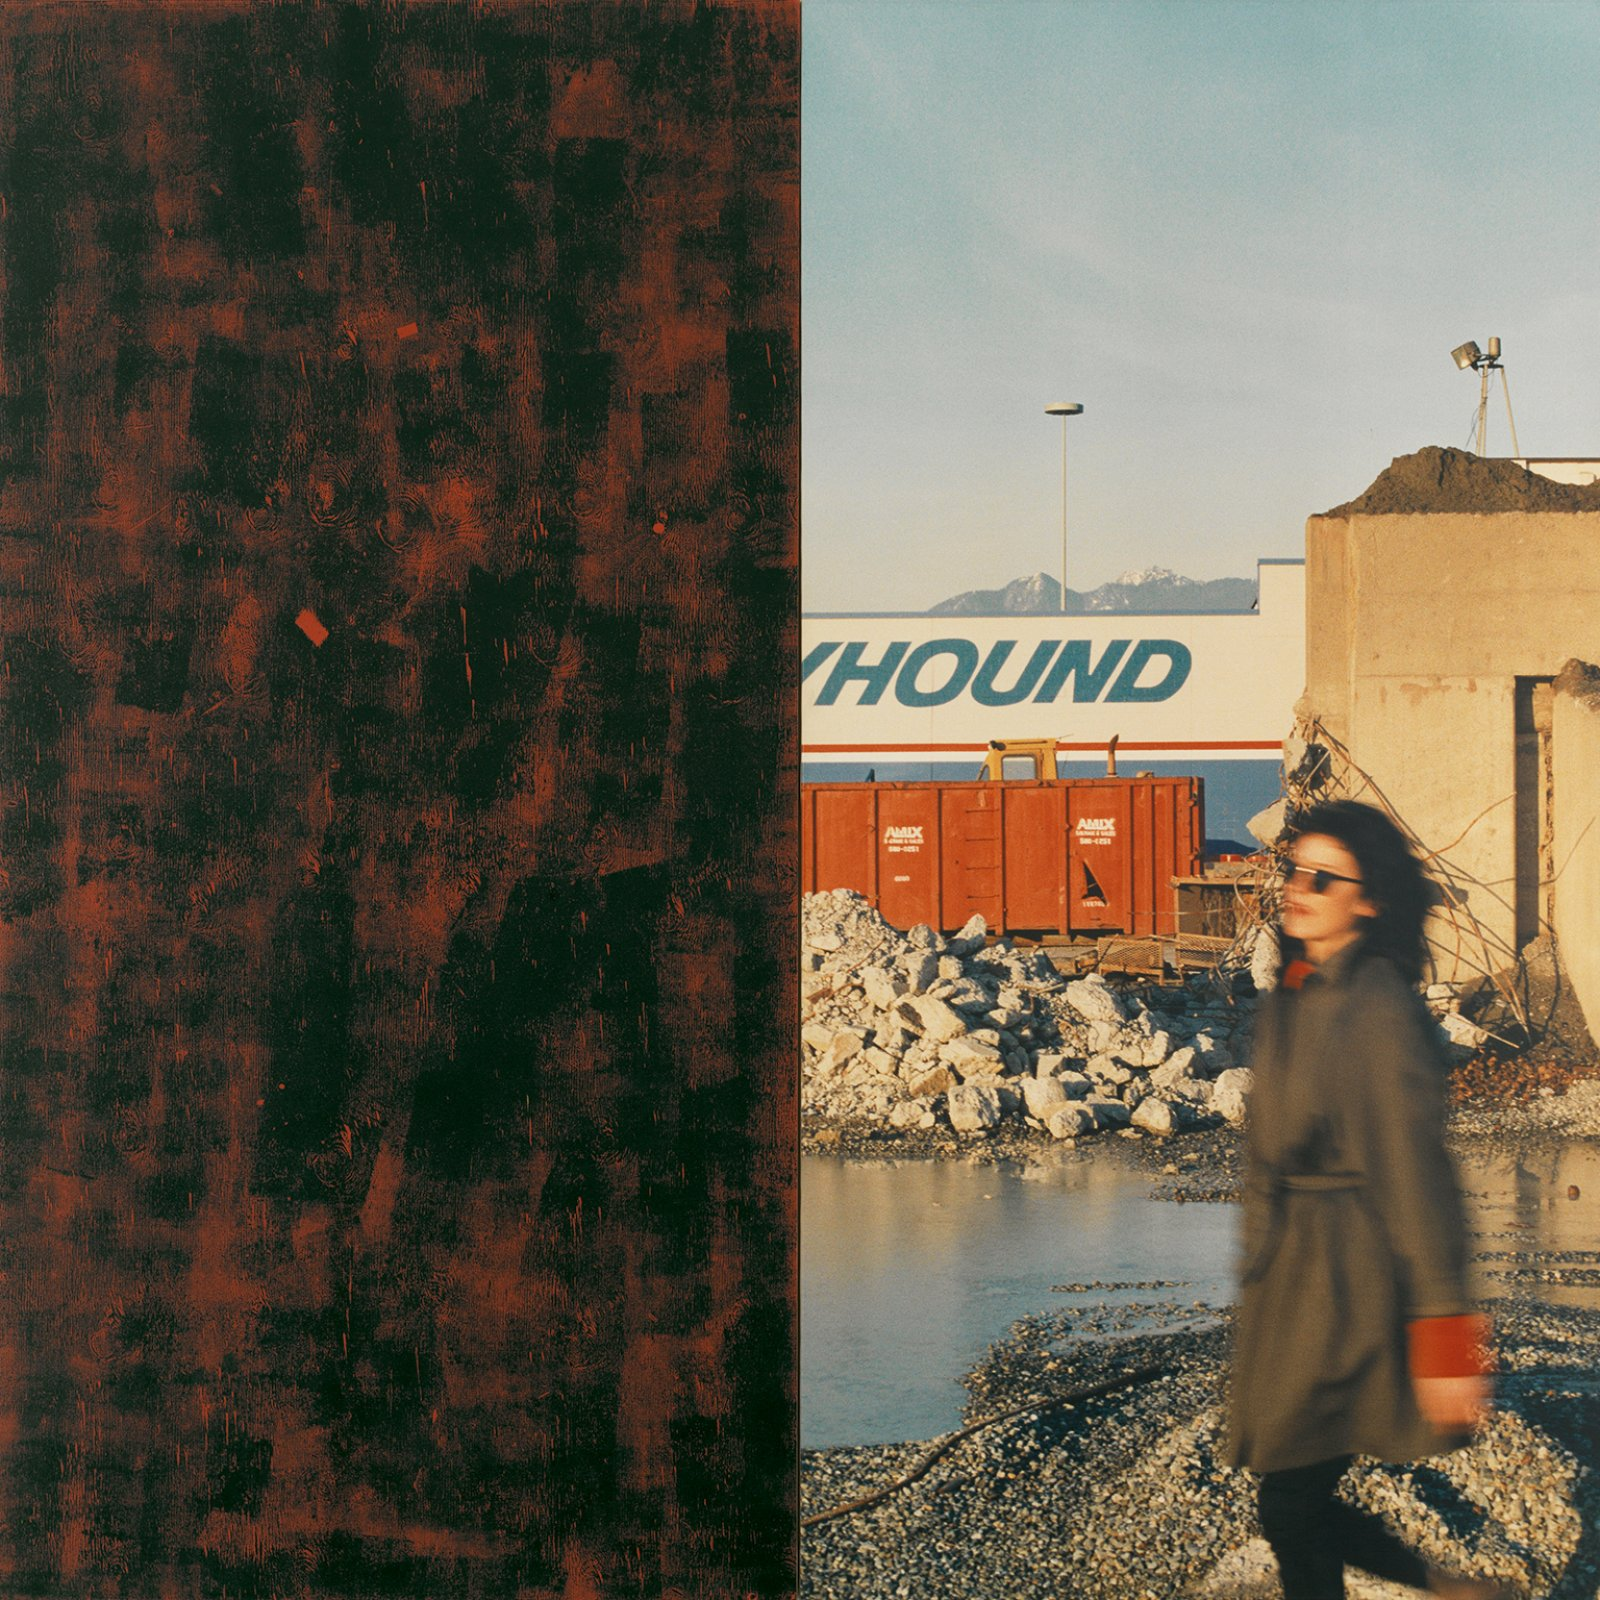 Ian Wallace, In the Street (Greyhound), 1989, photolaminate with acrylic and ink monoprint on canvas, diptych, 96 x 96 in. (244 x 244 cm). Installation view, A Literature of Images, Kunsthalle Zürich, 2008 by Ian Wallace